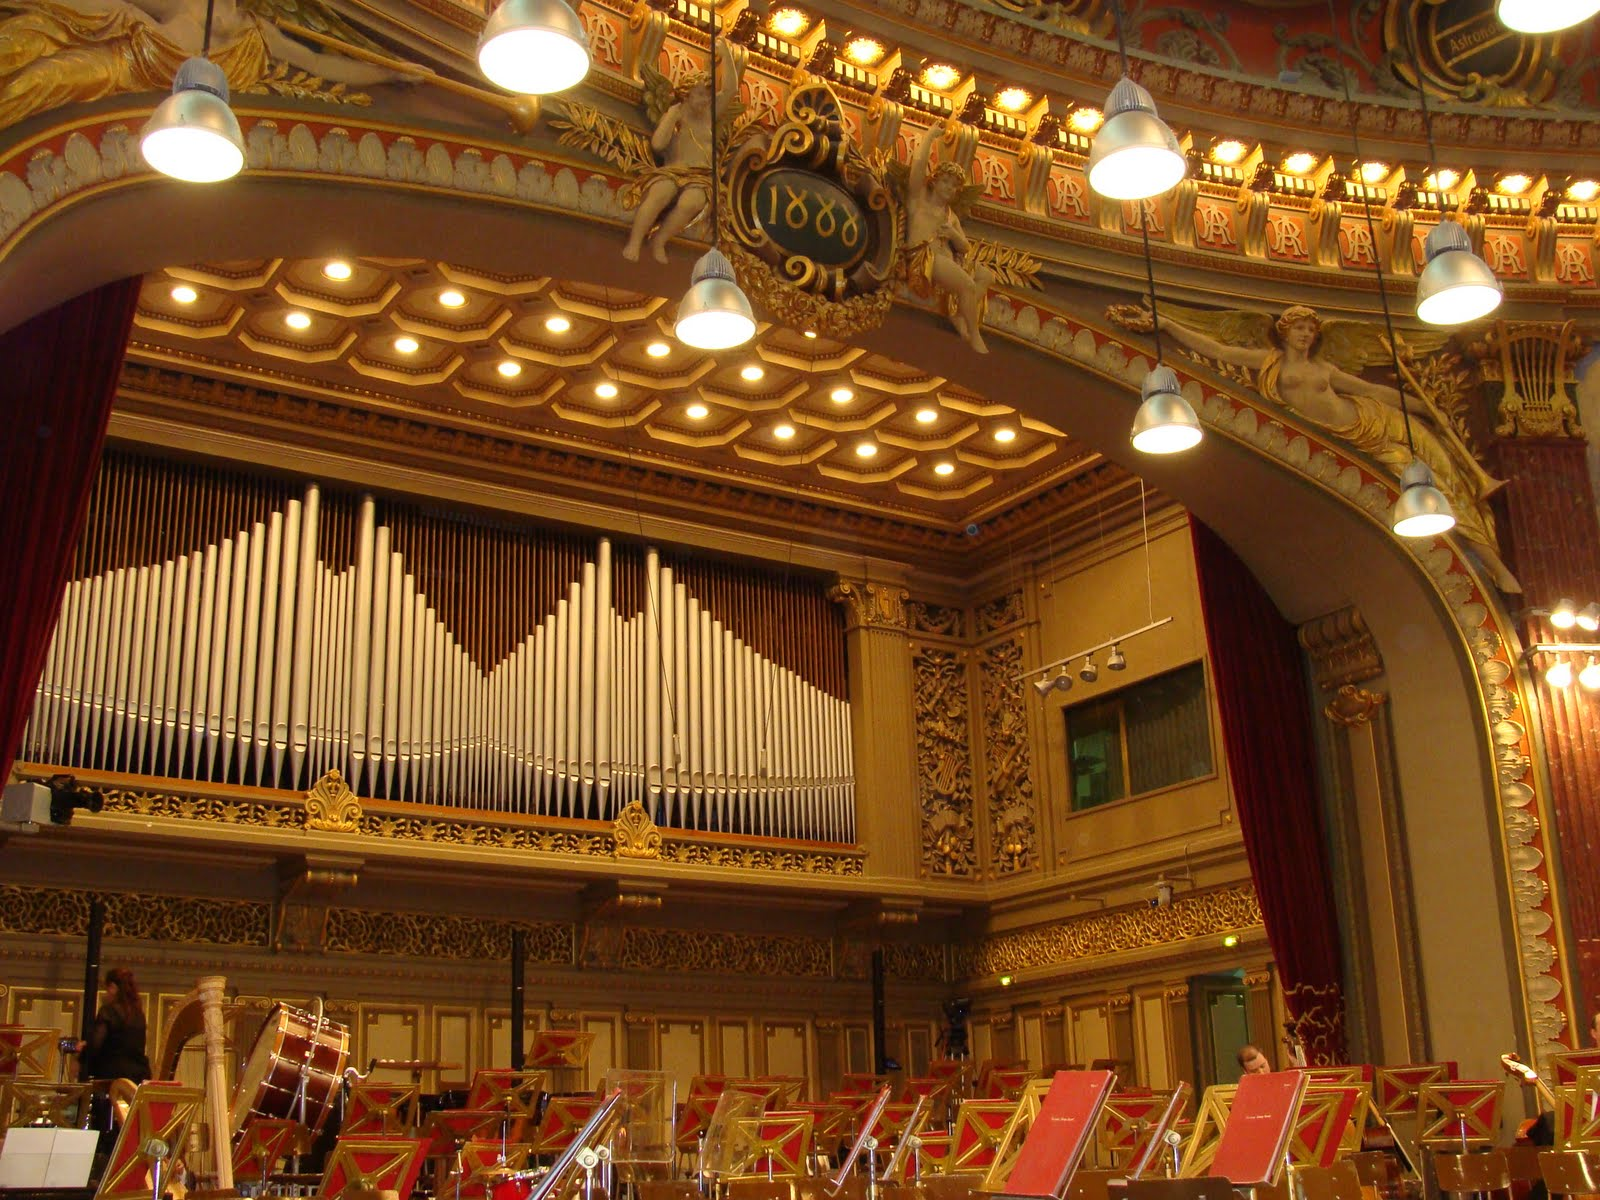 Romanian Athenaeum Organ. Photo mada